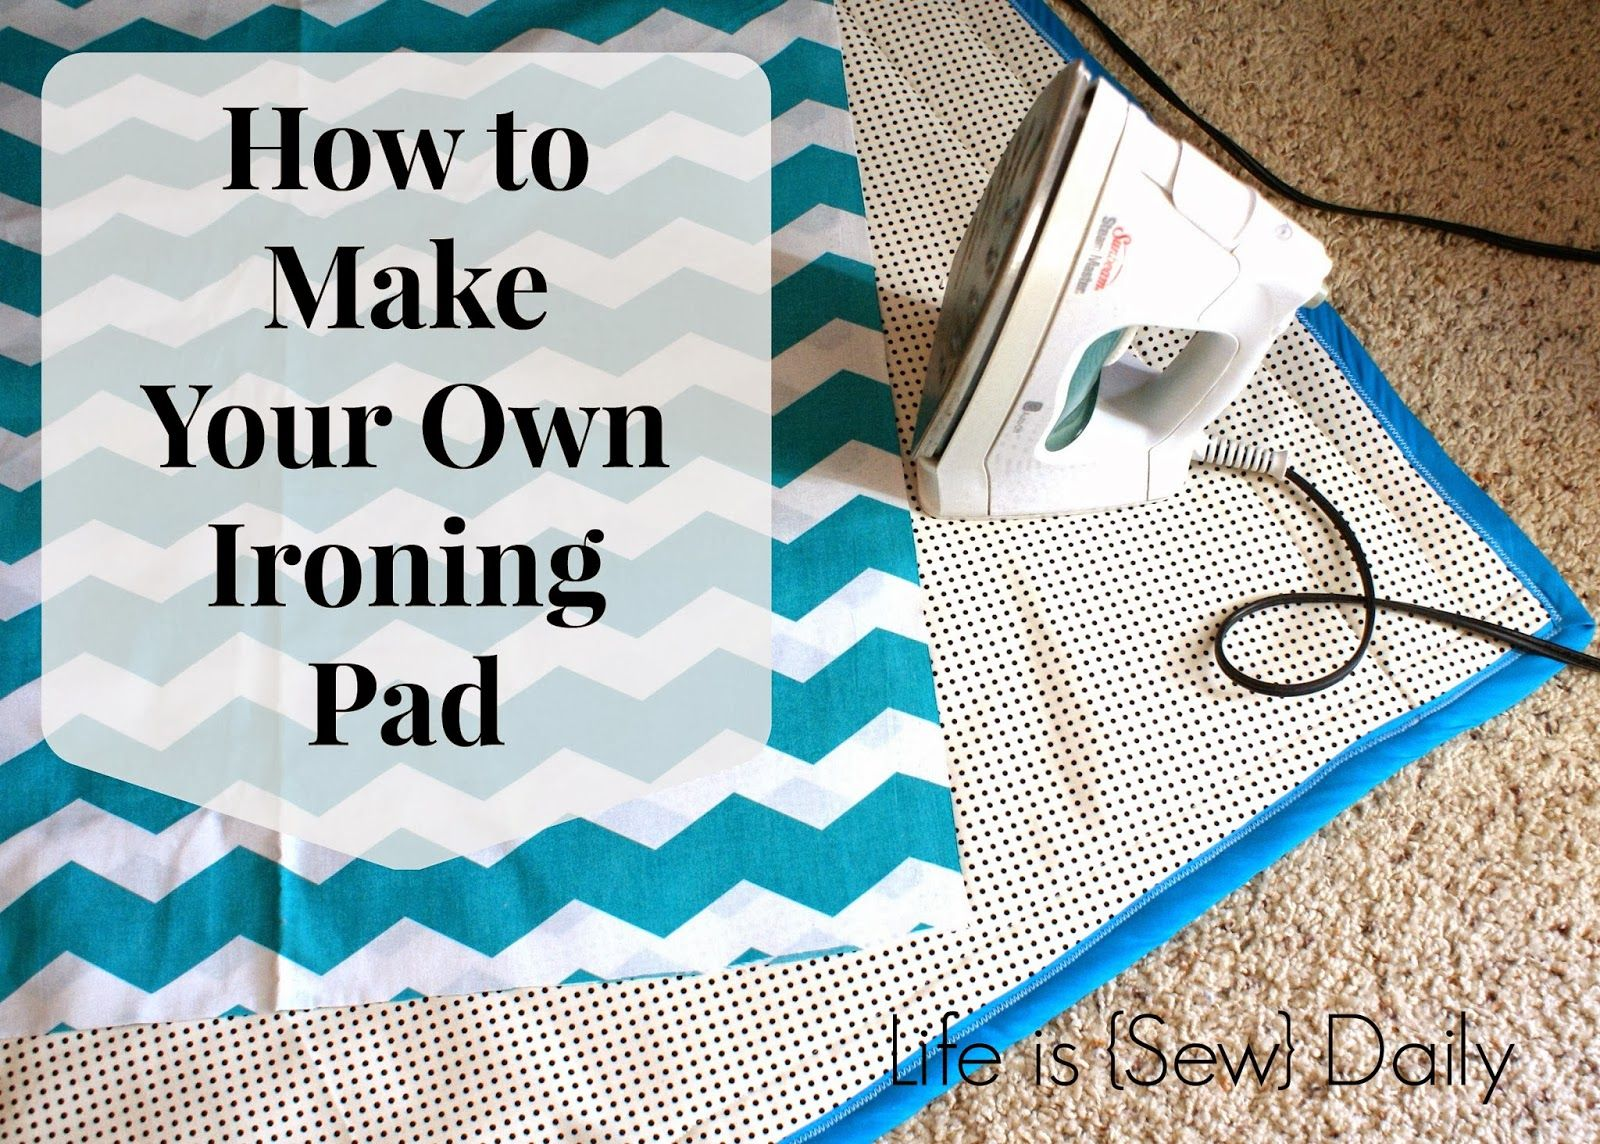 How to Make an Ironing Pad (Life is {Sew} Daily) | Ironing pad ... : quilting ironing pad - Adamdwight.com